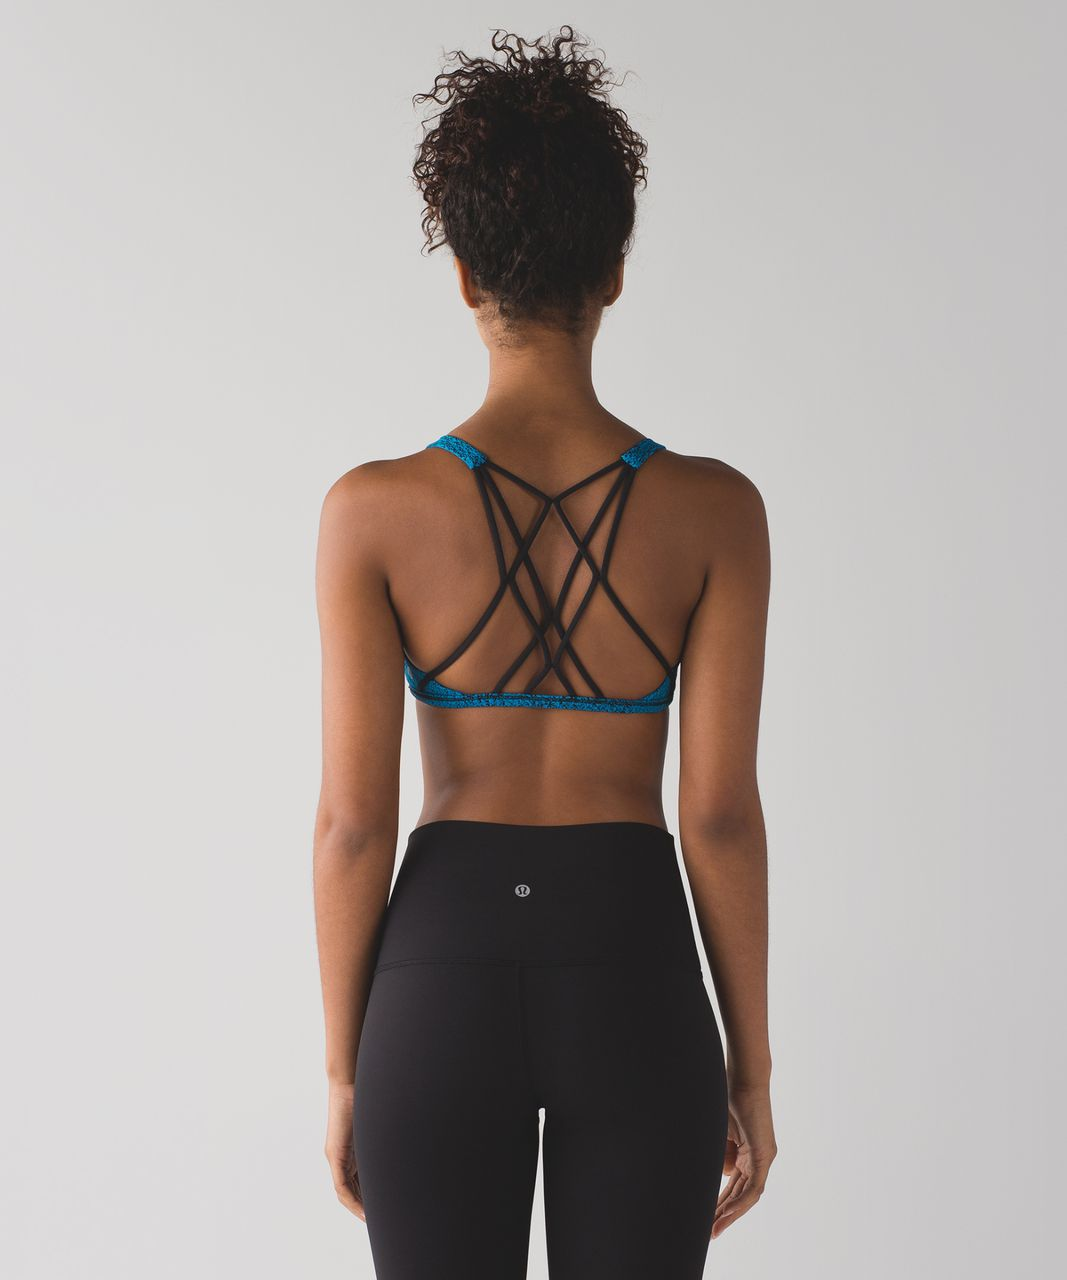 Lululemon Free To Be Zen Bra - Power Luxtreme Spray Jacquard Shocking Blue Black / Black